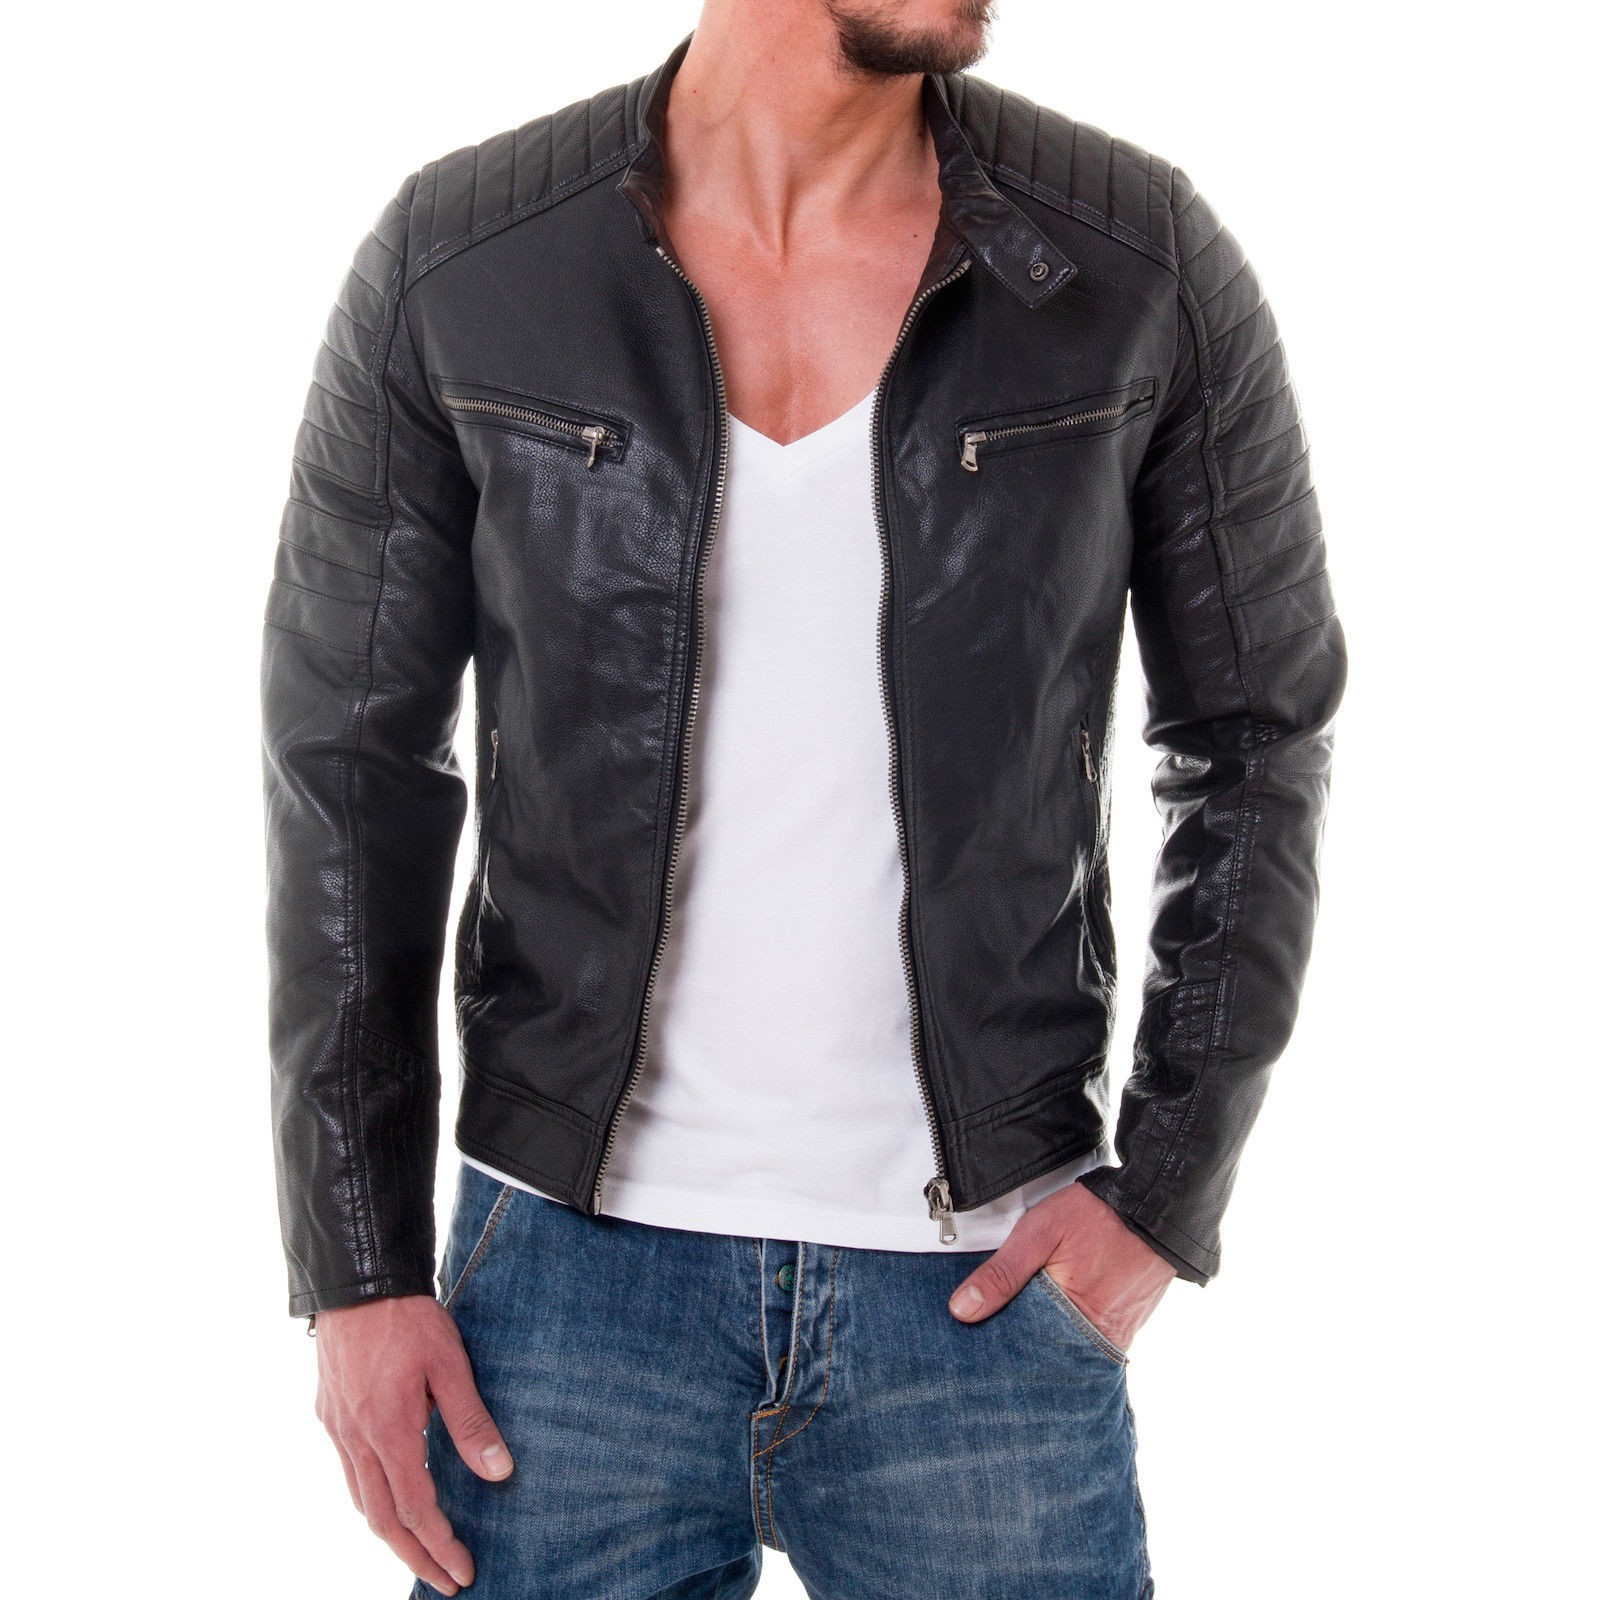 bonai 005 herren biker jacke gesteppt pu kunst lederjacke. Black Bedroom Furniture Sets. Home Design Ideas